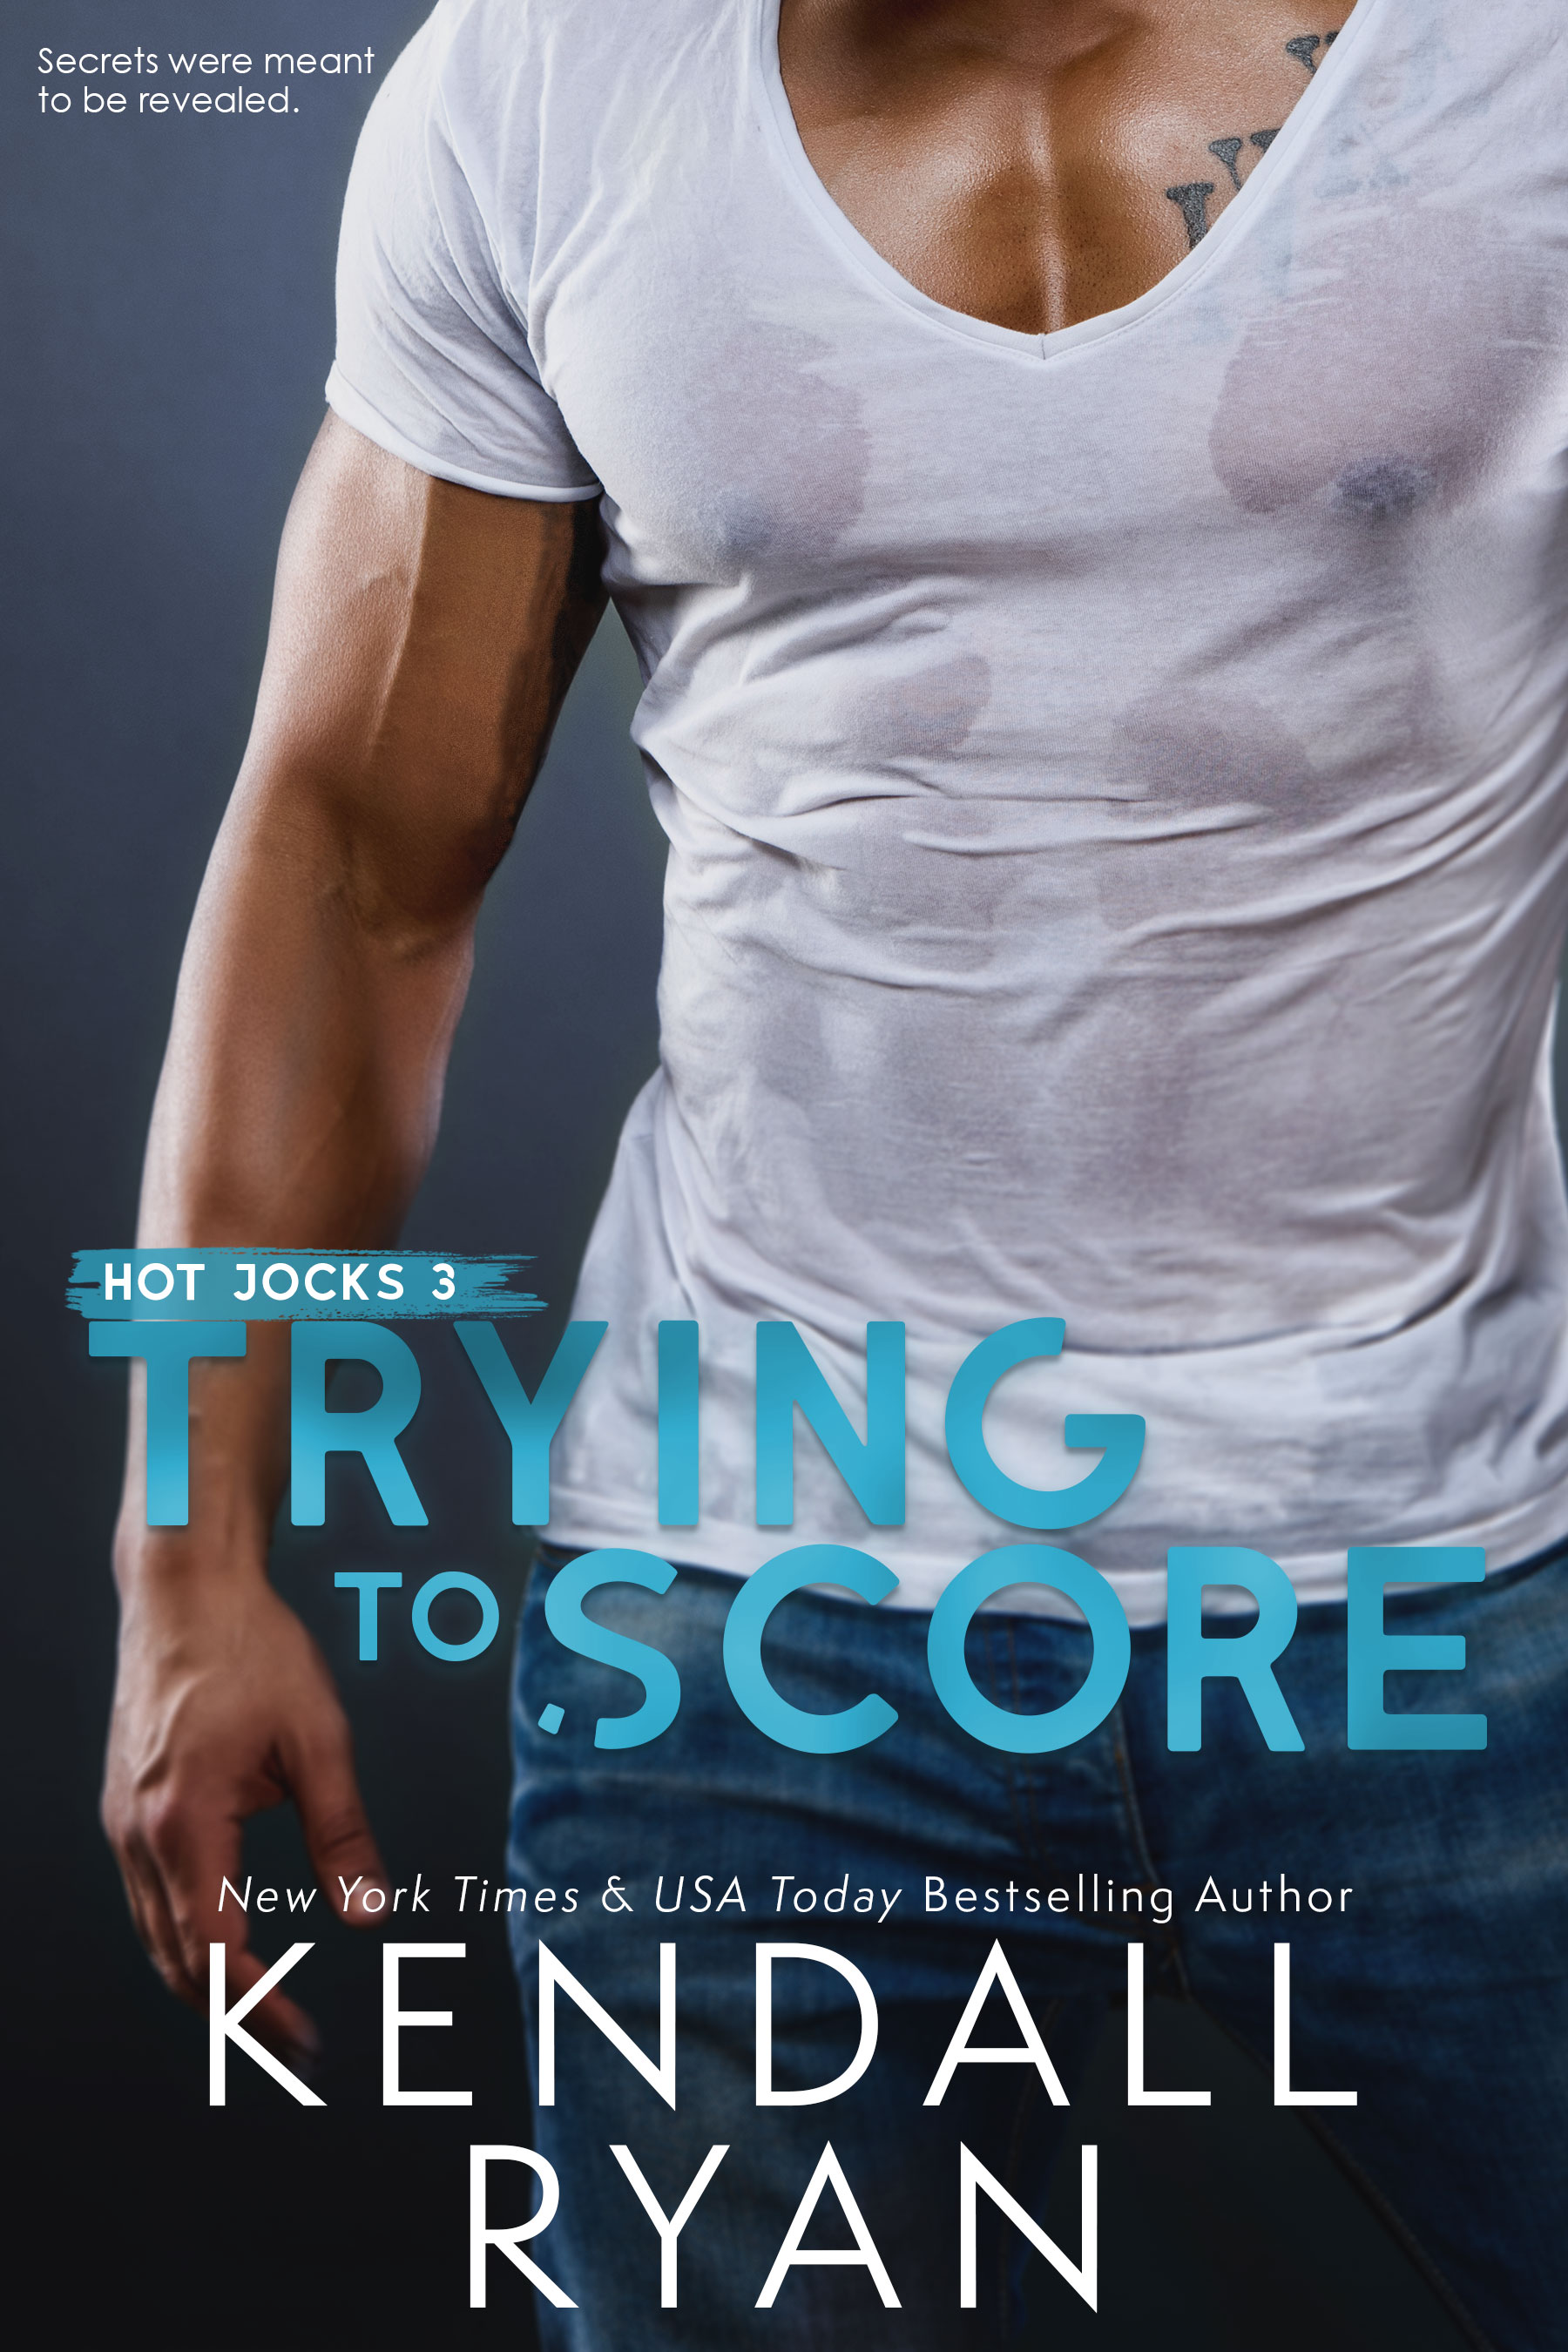 Andie Case Sex Tape cover reveal: trying to score (hot jocks #3)kendall ryan